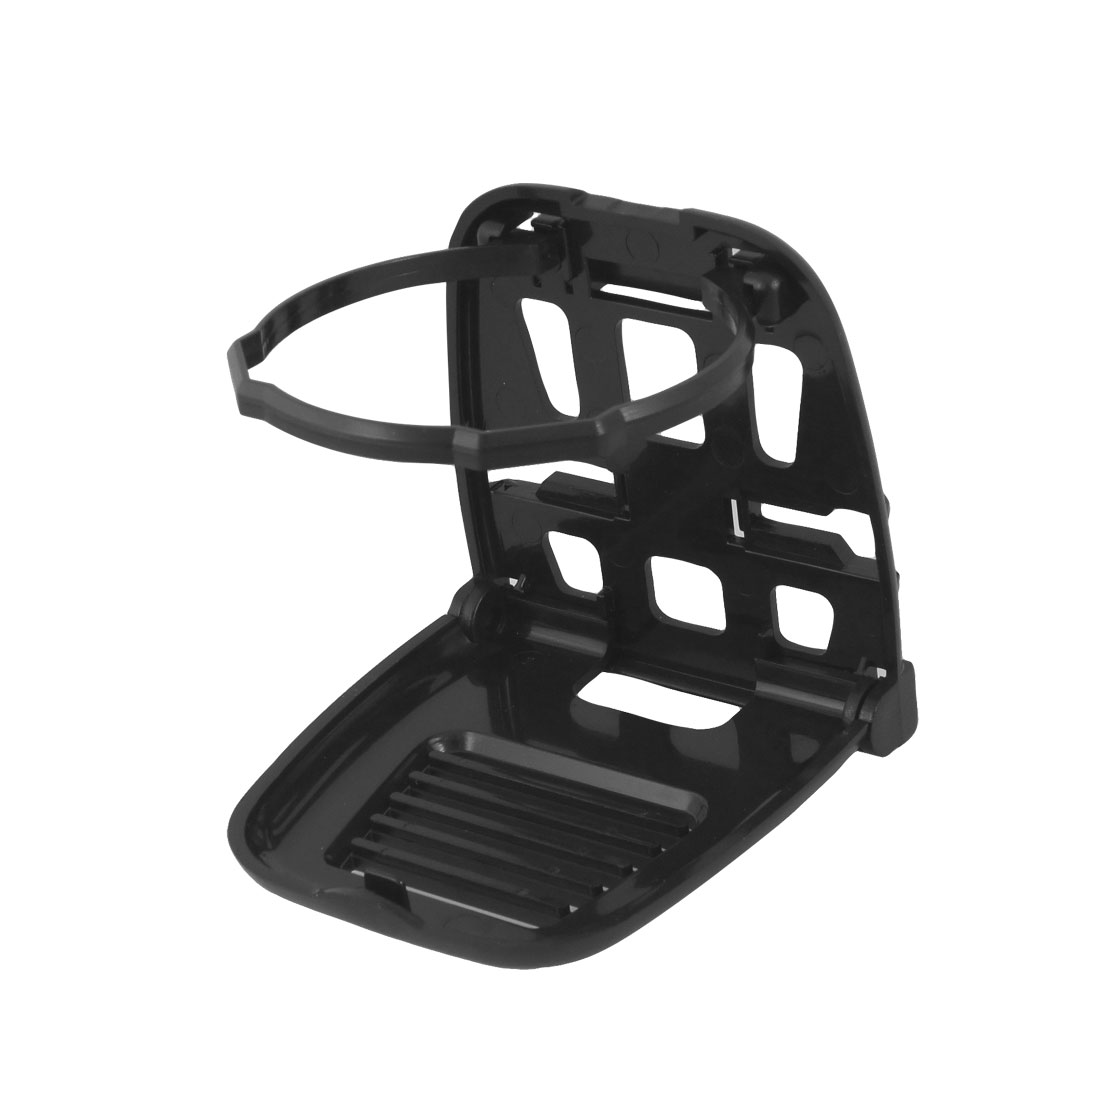 Black Plastic Foldable Drink Bottle Cup Holder Stand for Auto Car